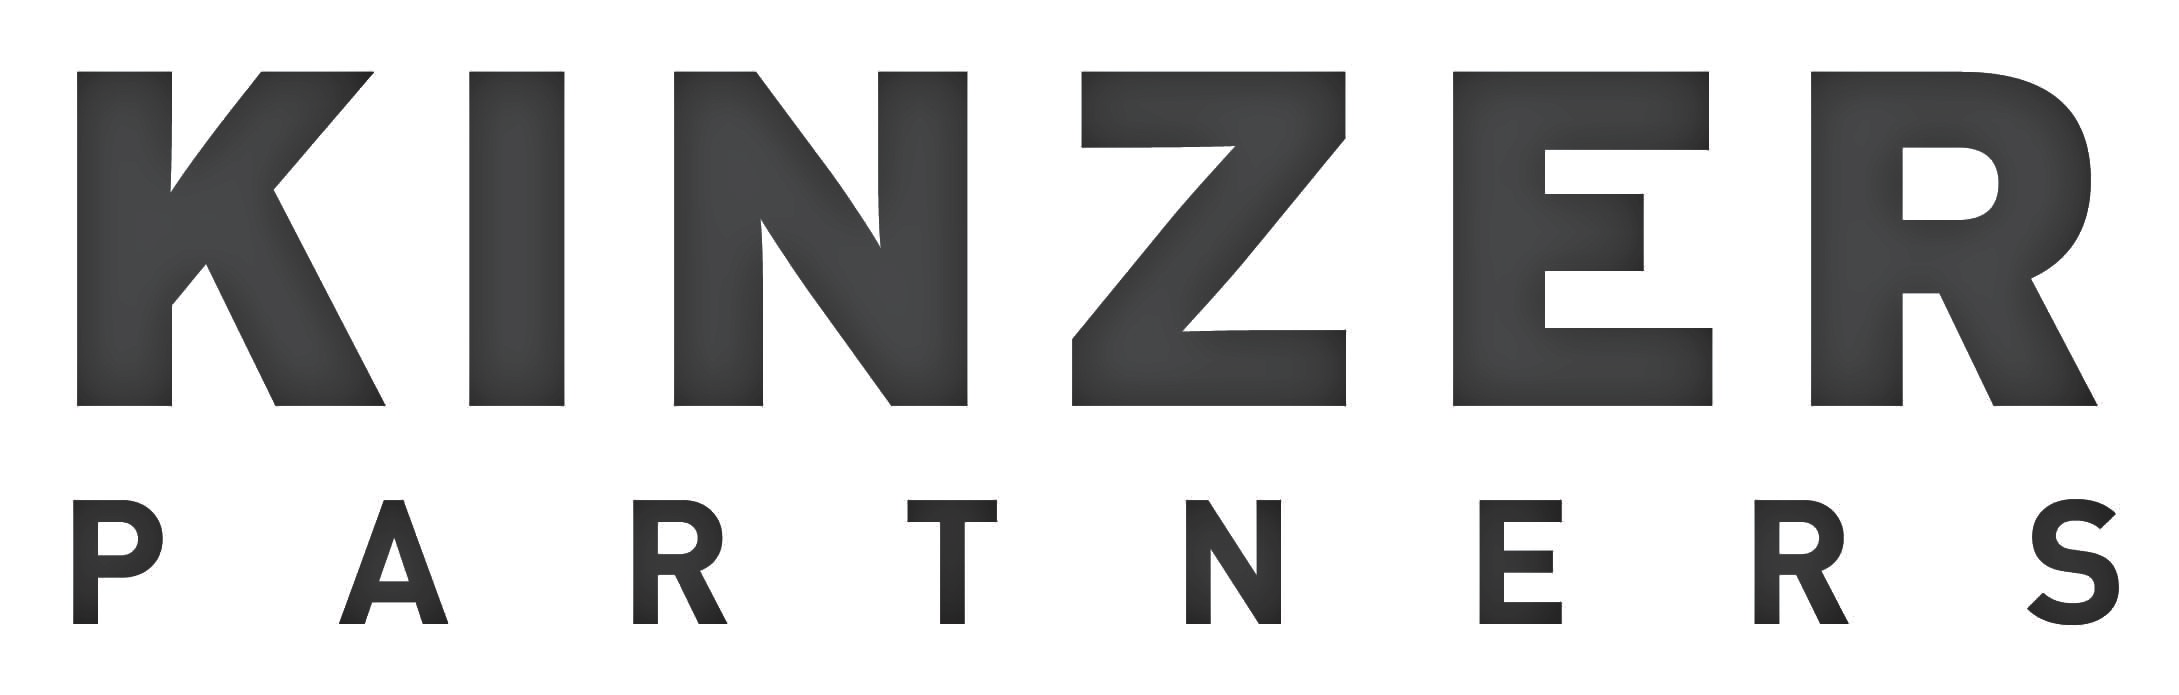 Kinzer Partners _final_logo BW.jpg